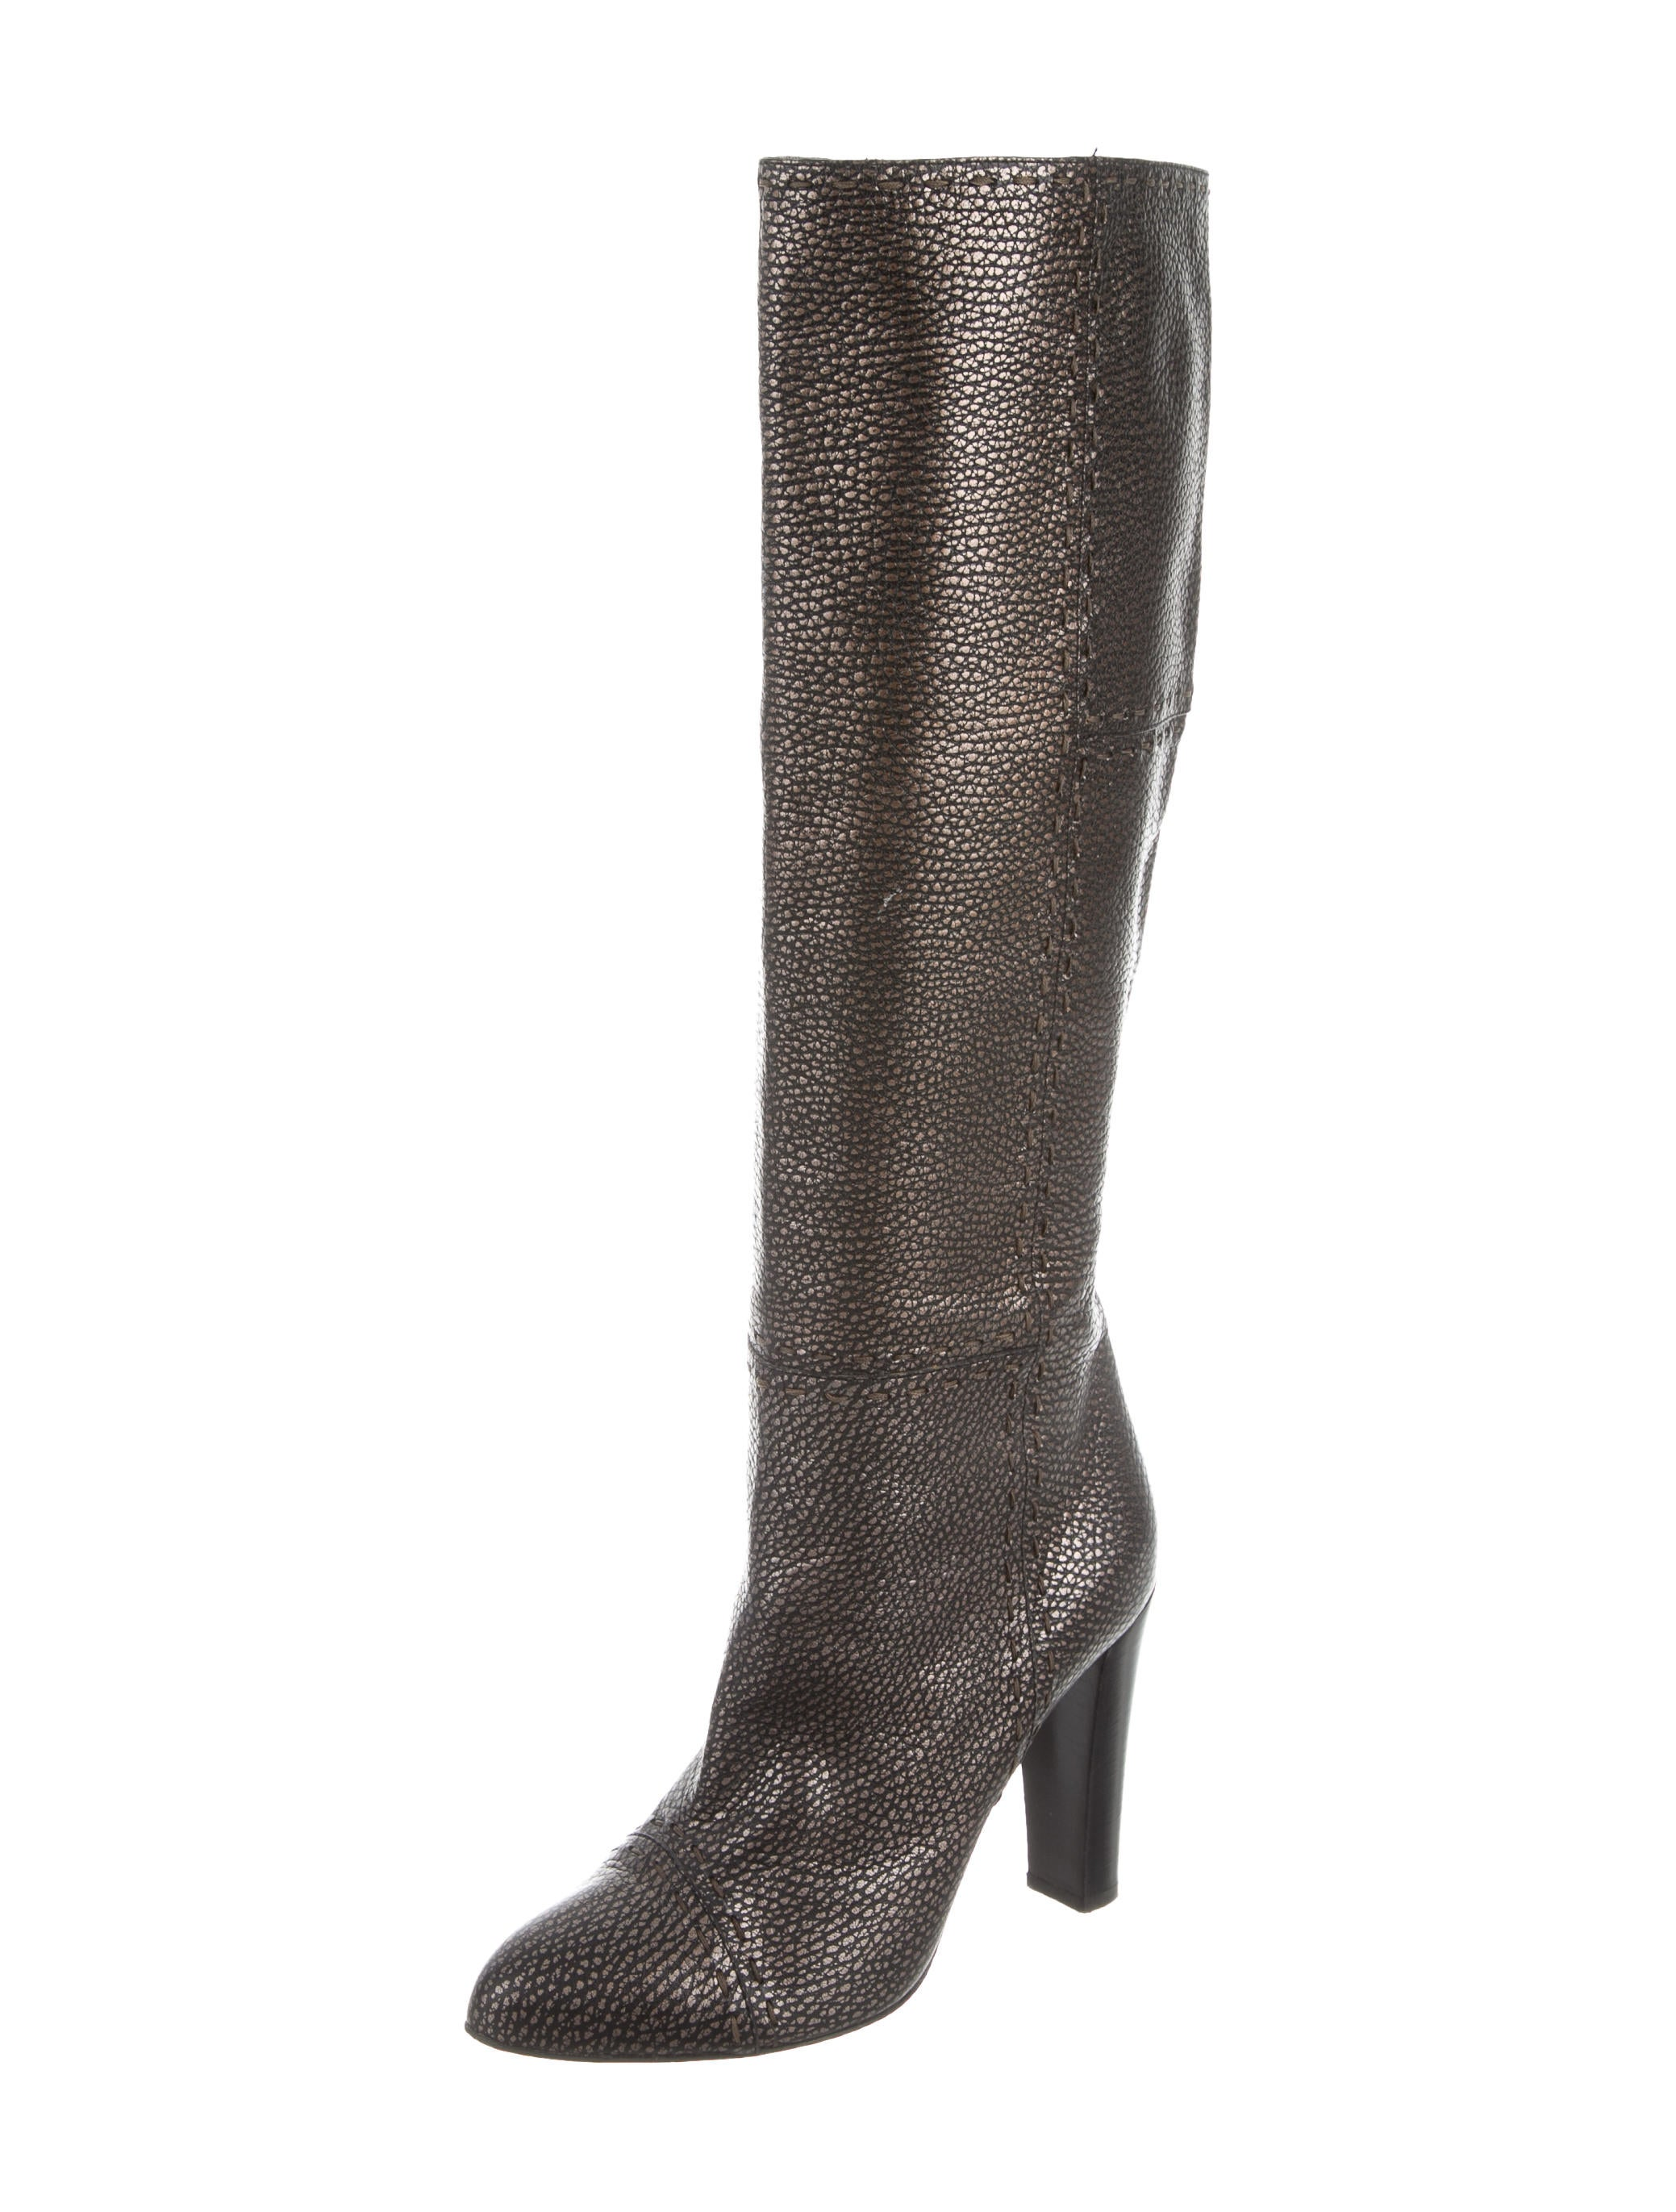 Metallic Leather Boots : Fendi metallic leather boots shoes fen the realreal